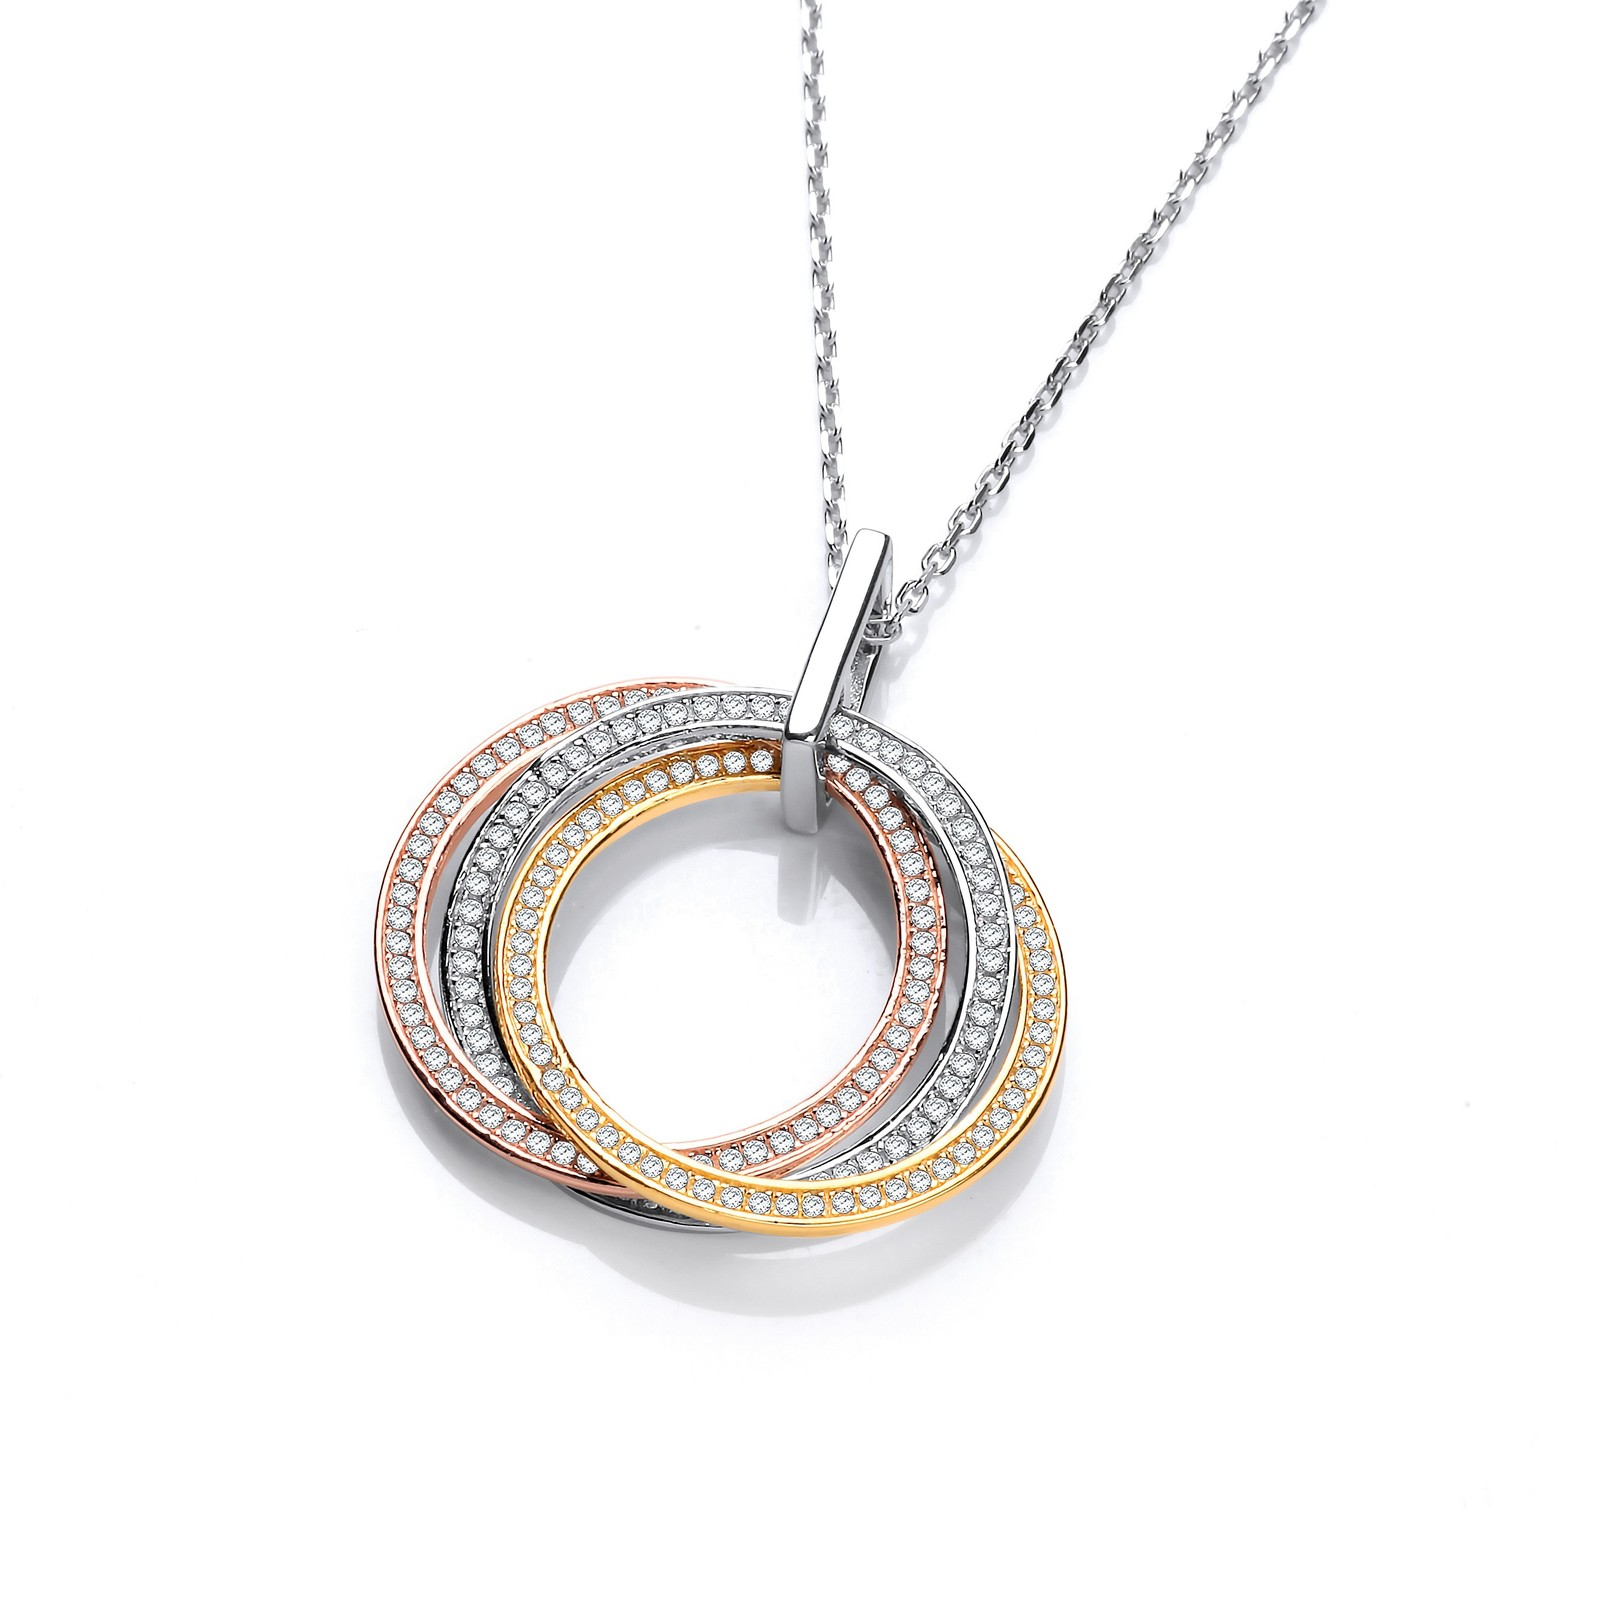 "Silver, Yellow & Rose Gold Plated Cz Pendant with 18"" Chain"